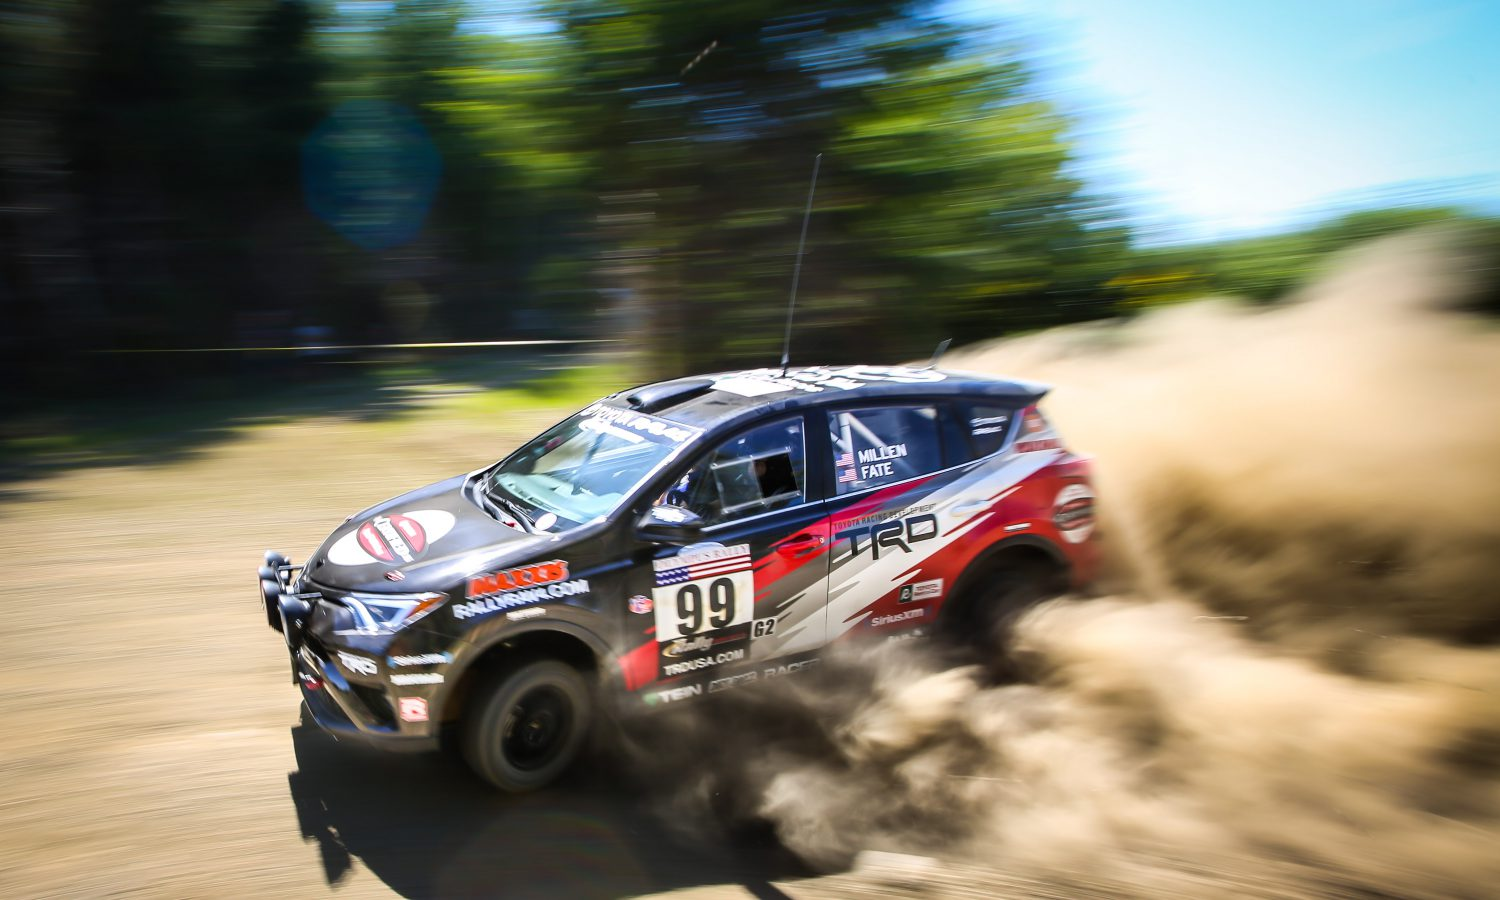 Win at Olympus Marks Back-to-Back Victories for Toyota RAV4